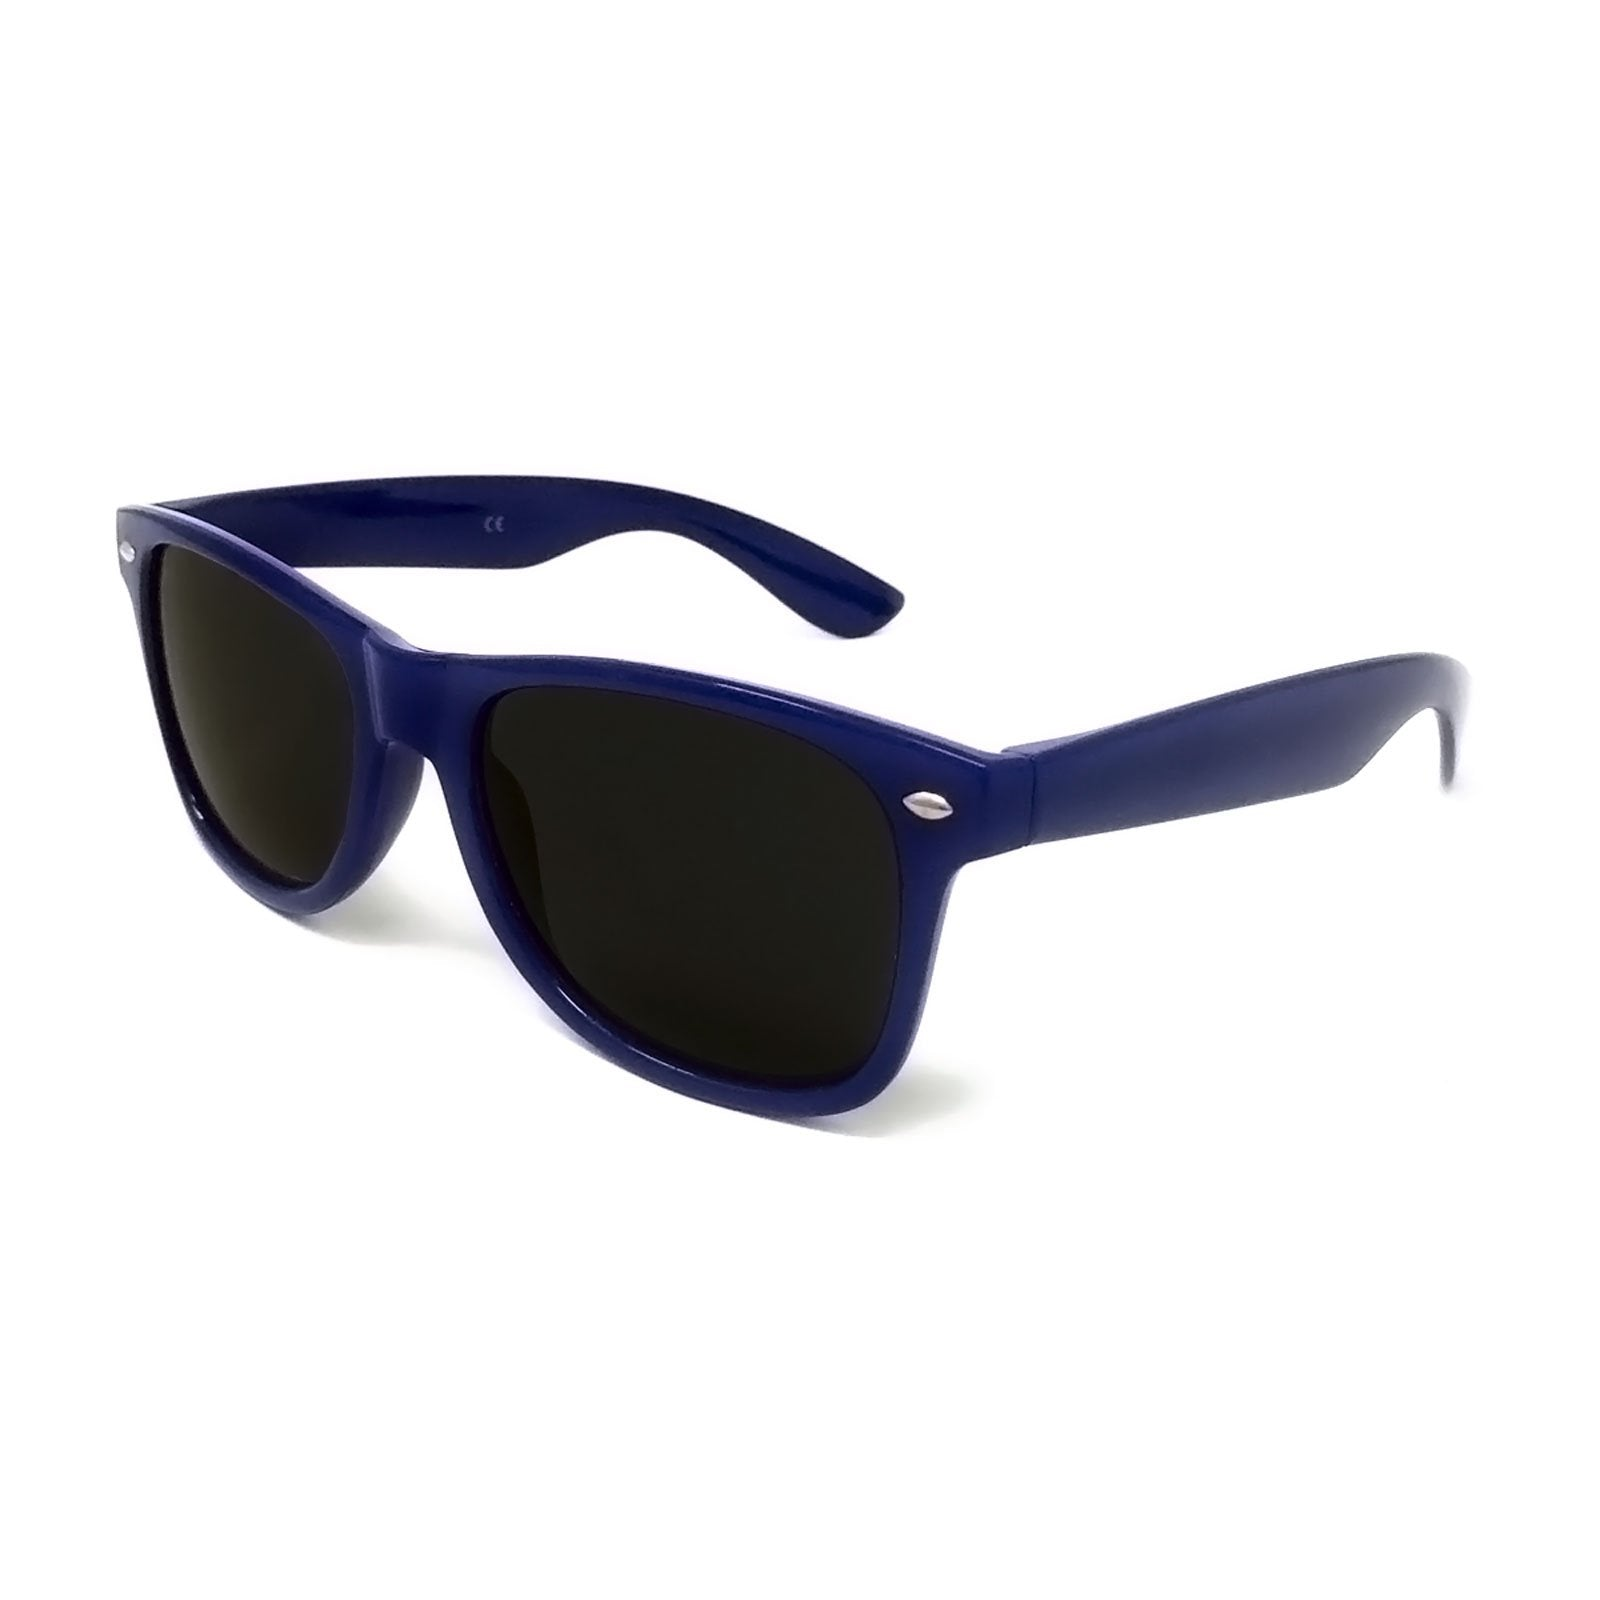 Wholesale Wayfarer Sunglasses - Dark Blue Frame, Black Lens